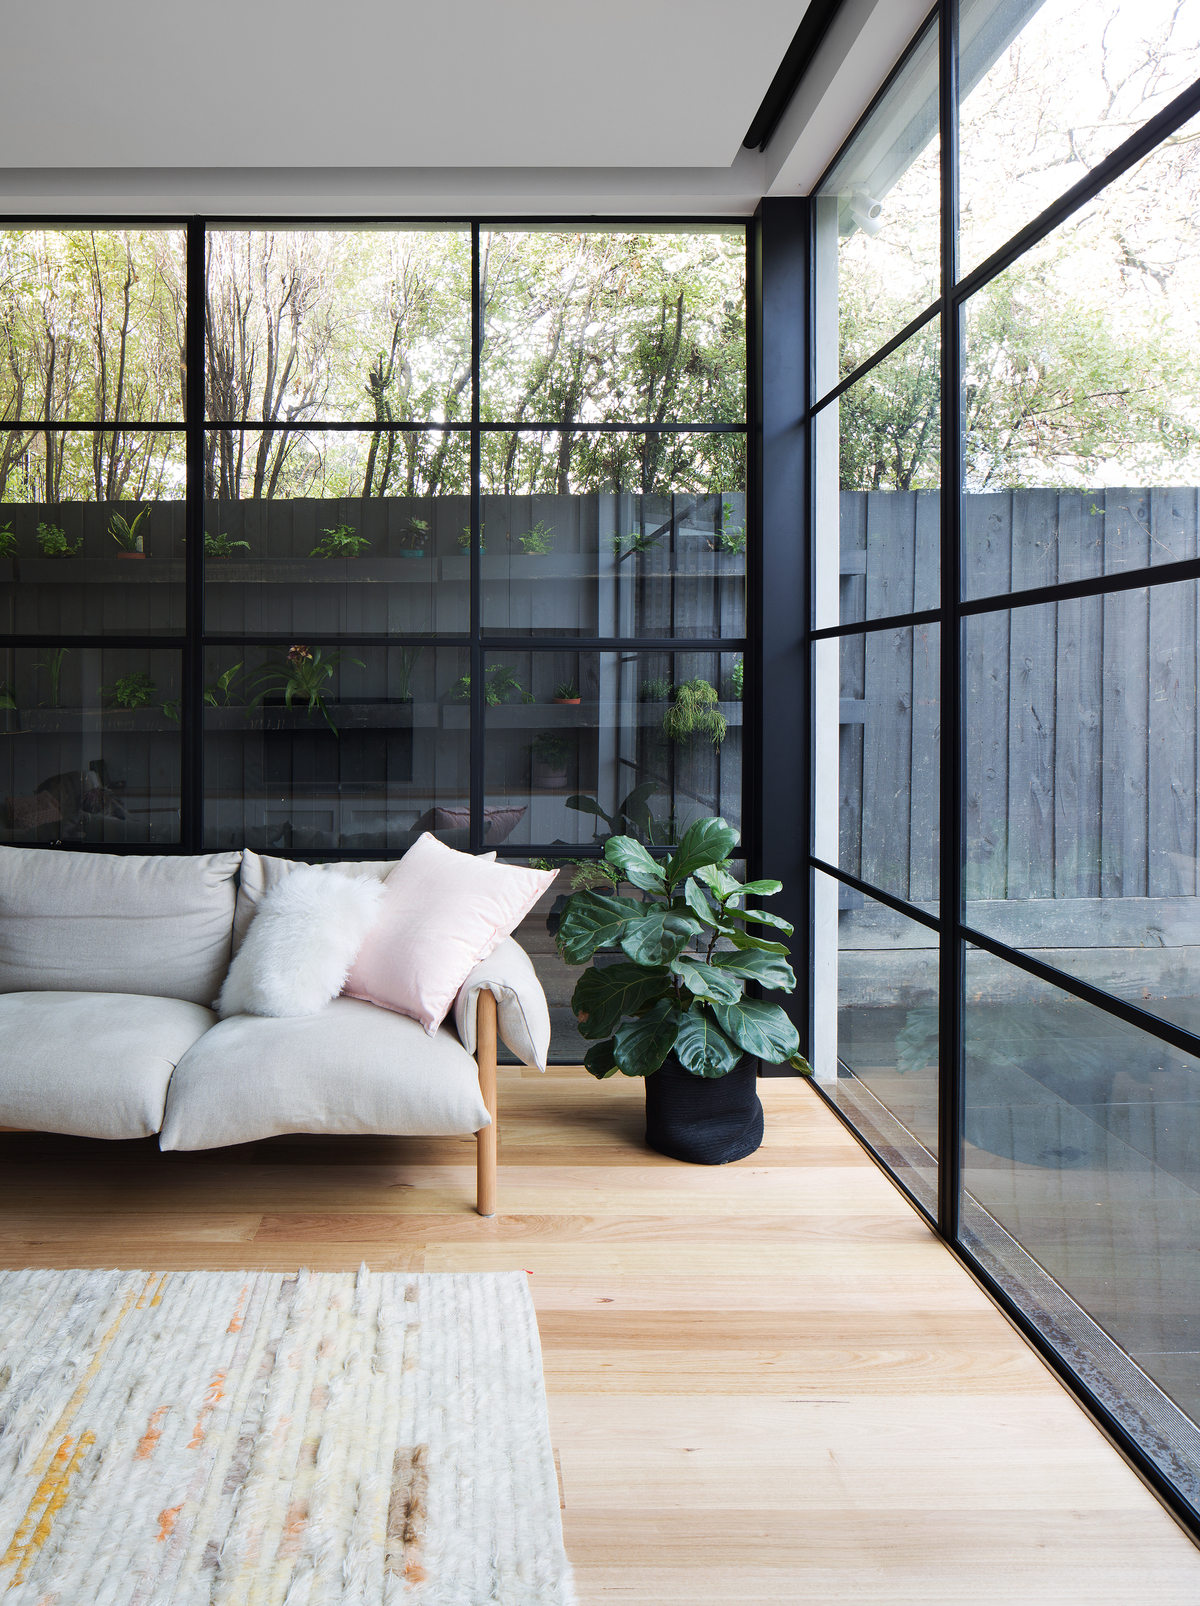 Australian Design, Hawthorn Terrace by Dan Webster, Melbourne, VIC, Australia (3)